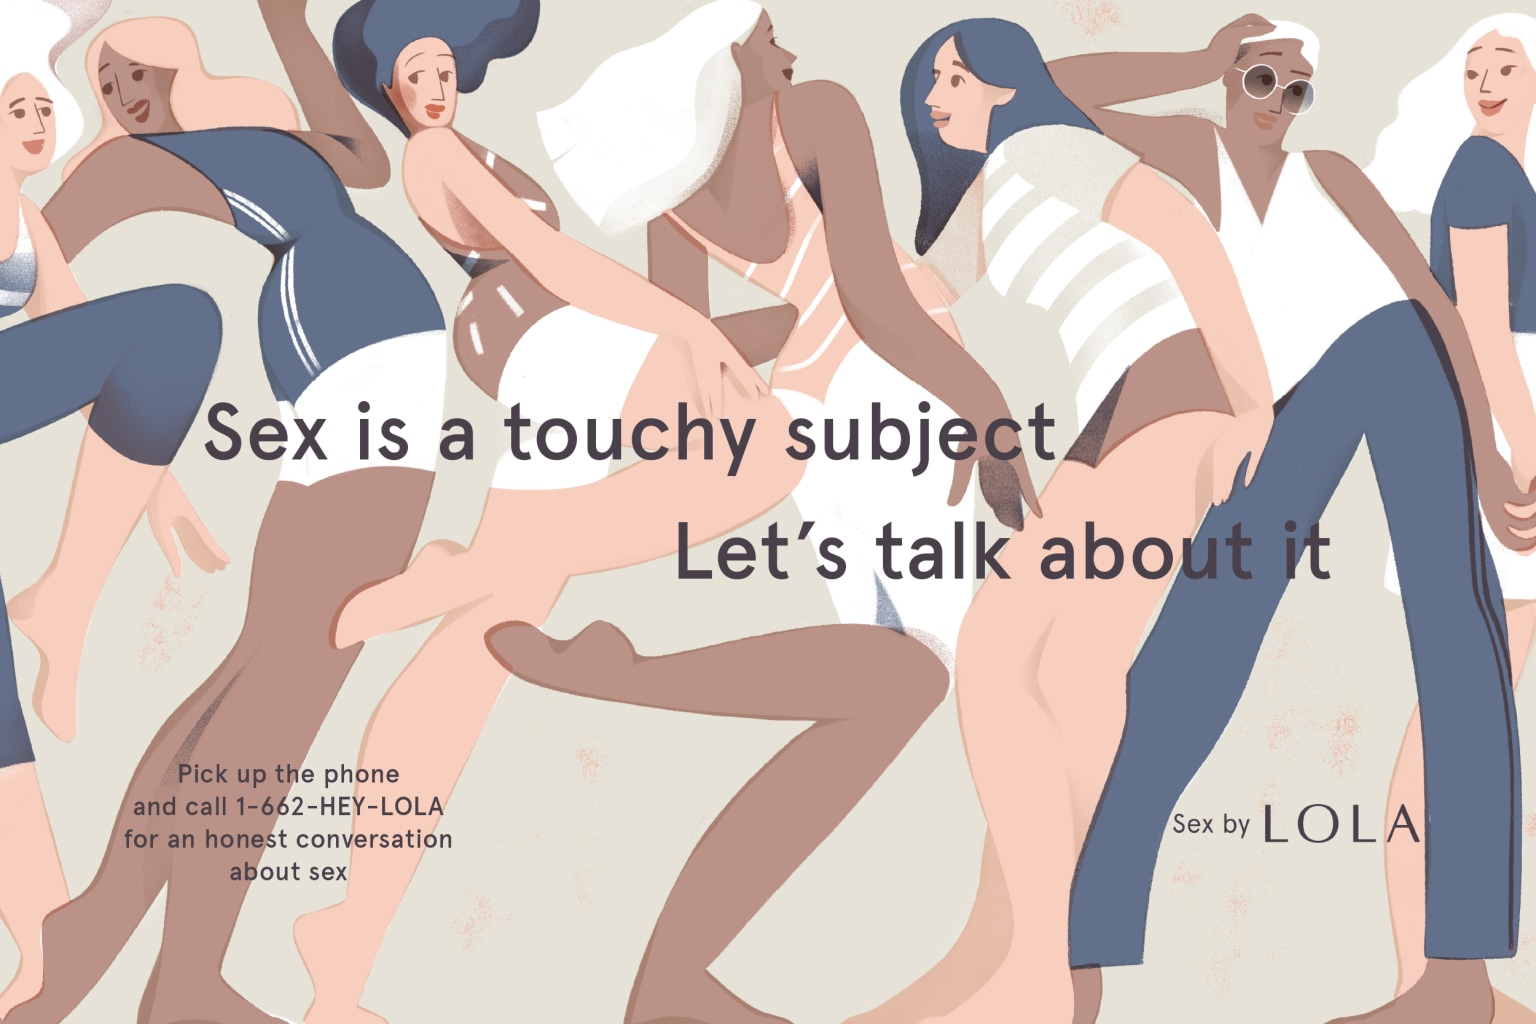 Sex by Lola